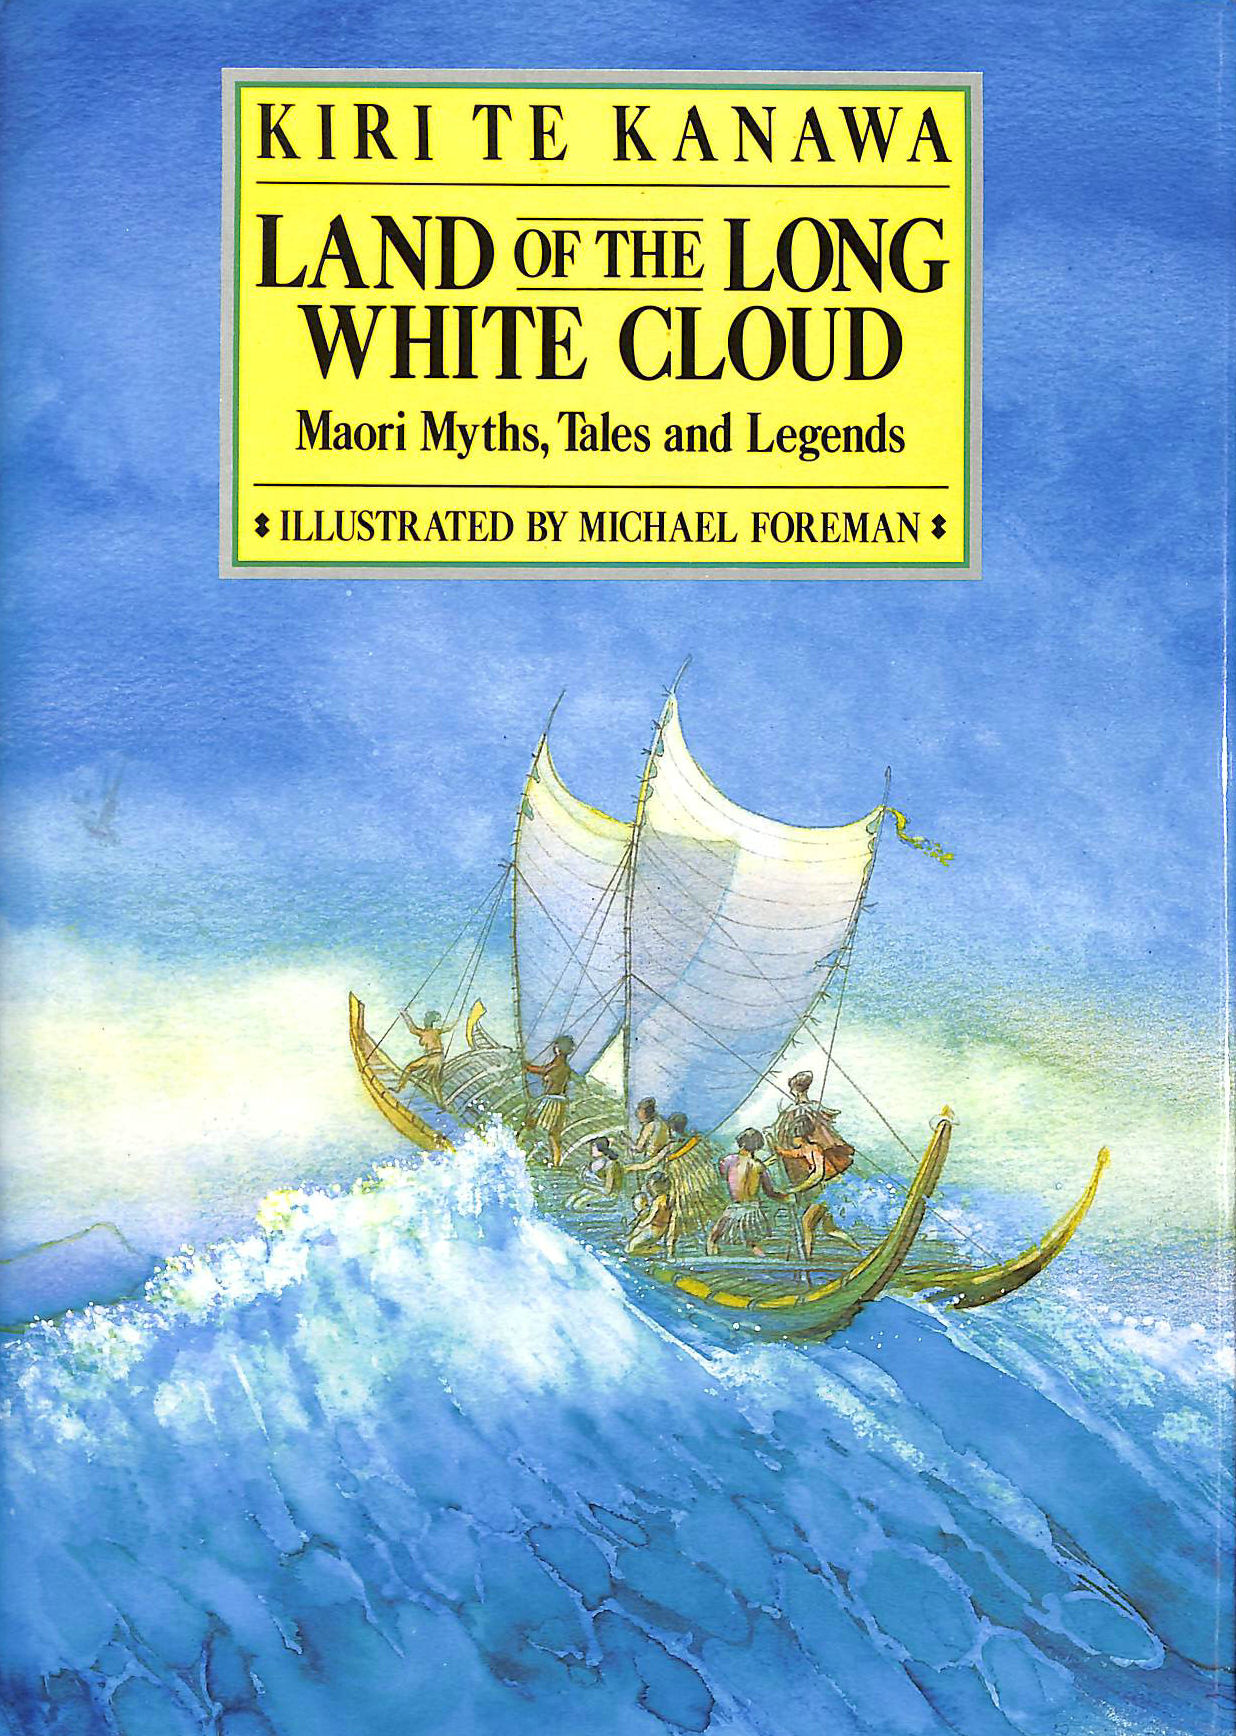 Image for LAND OF THE LONG WHITE CLOUD: MAORI MYTHS AND LEGENDS